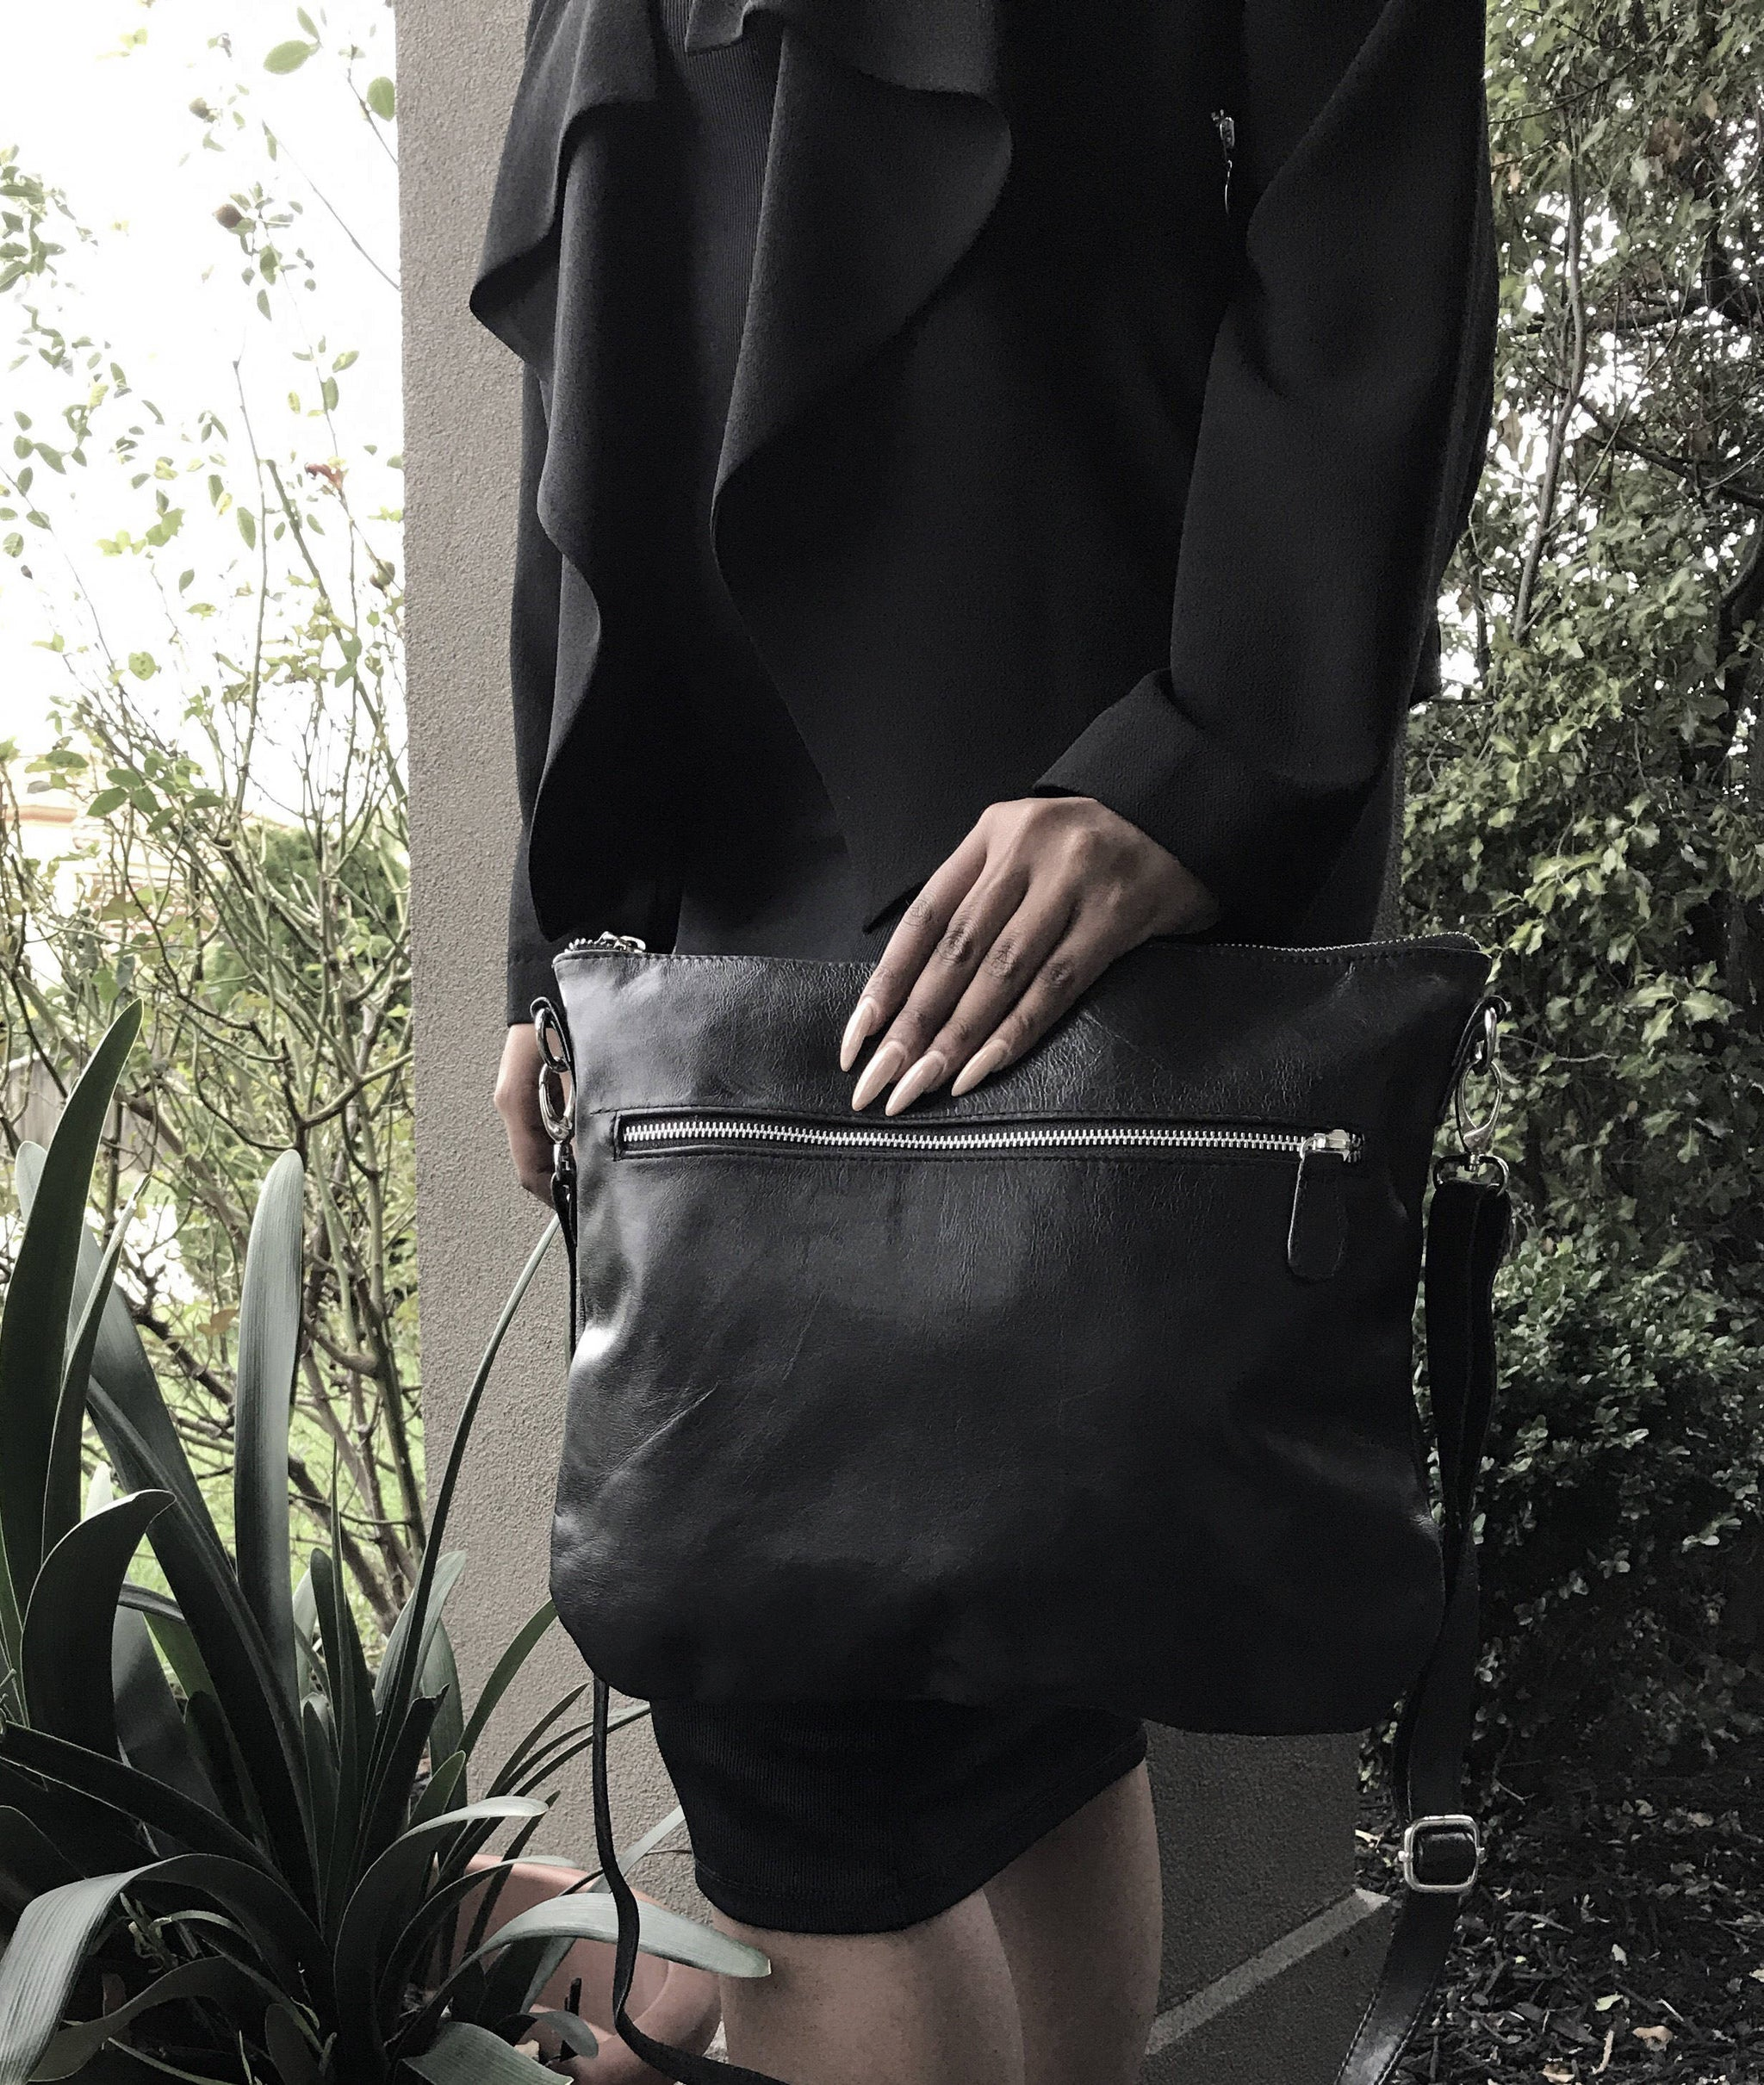 The Hipster Large-Real leather functional crossbody bag. Plain yet stylish.